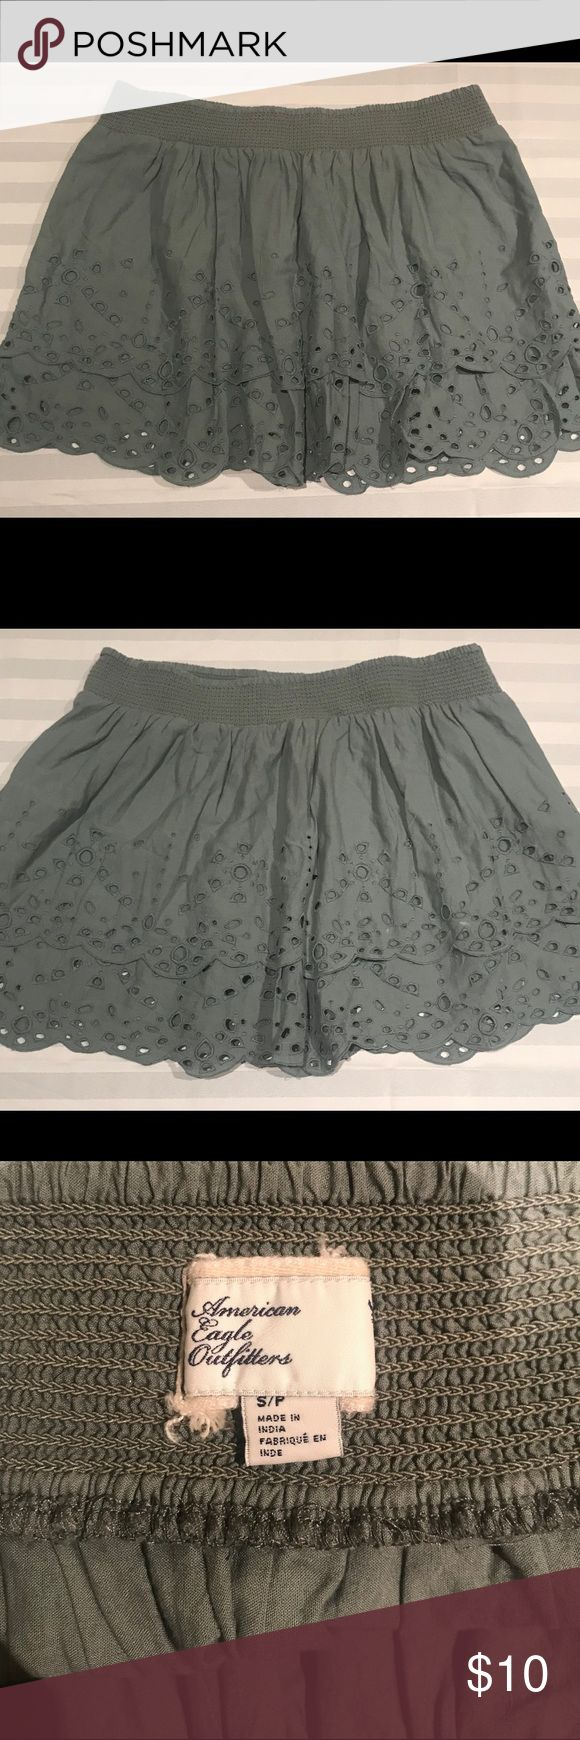 American Eagle Outfitters Green Skirt Cute green AEO skirt great for the spring and summer  Measurements   Size Small  Waist 14 inches  Length 14 1/2 inches  Bottom opening flat 28 inches   A45B American Eagle Outfitters Skirts